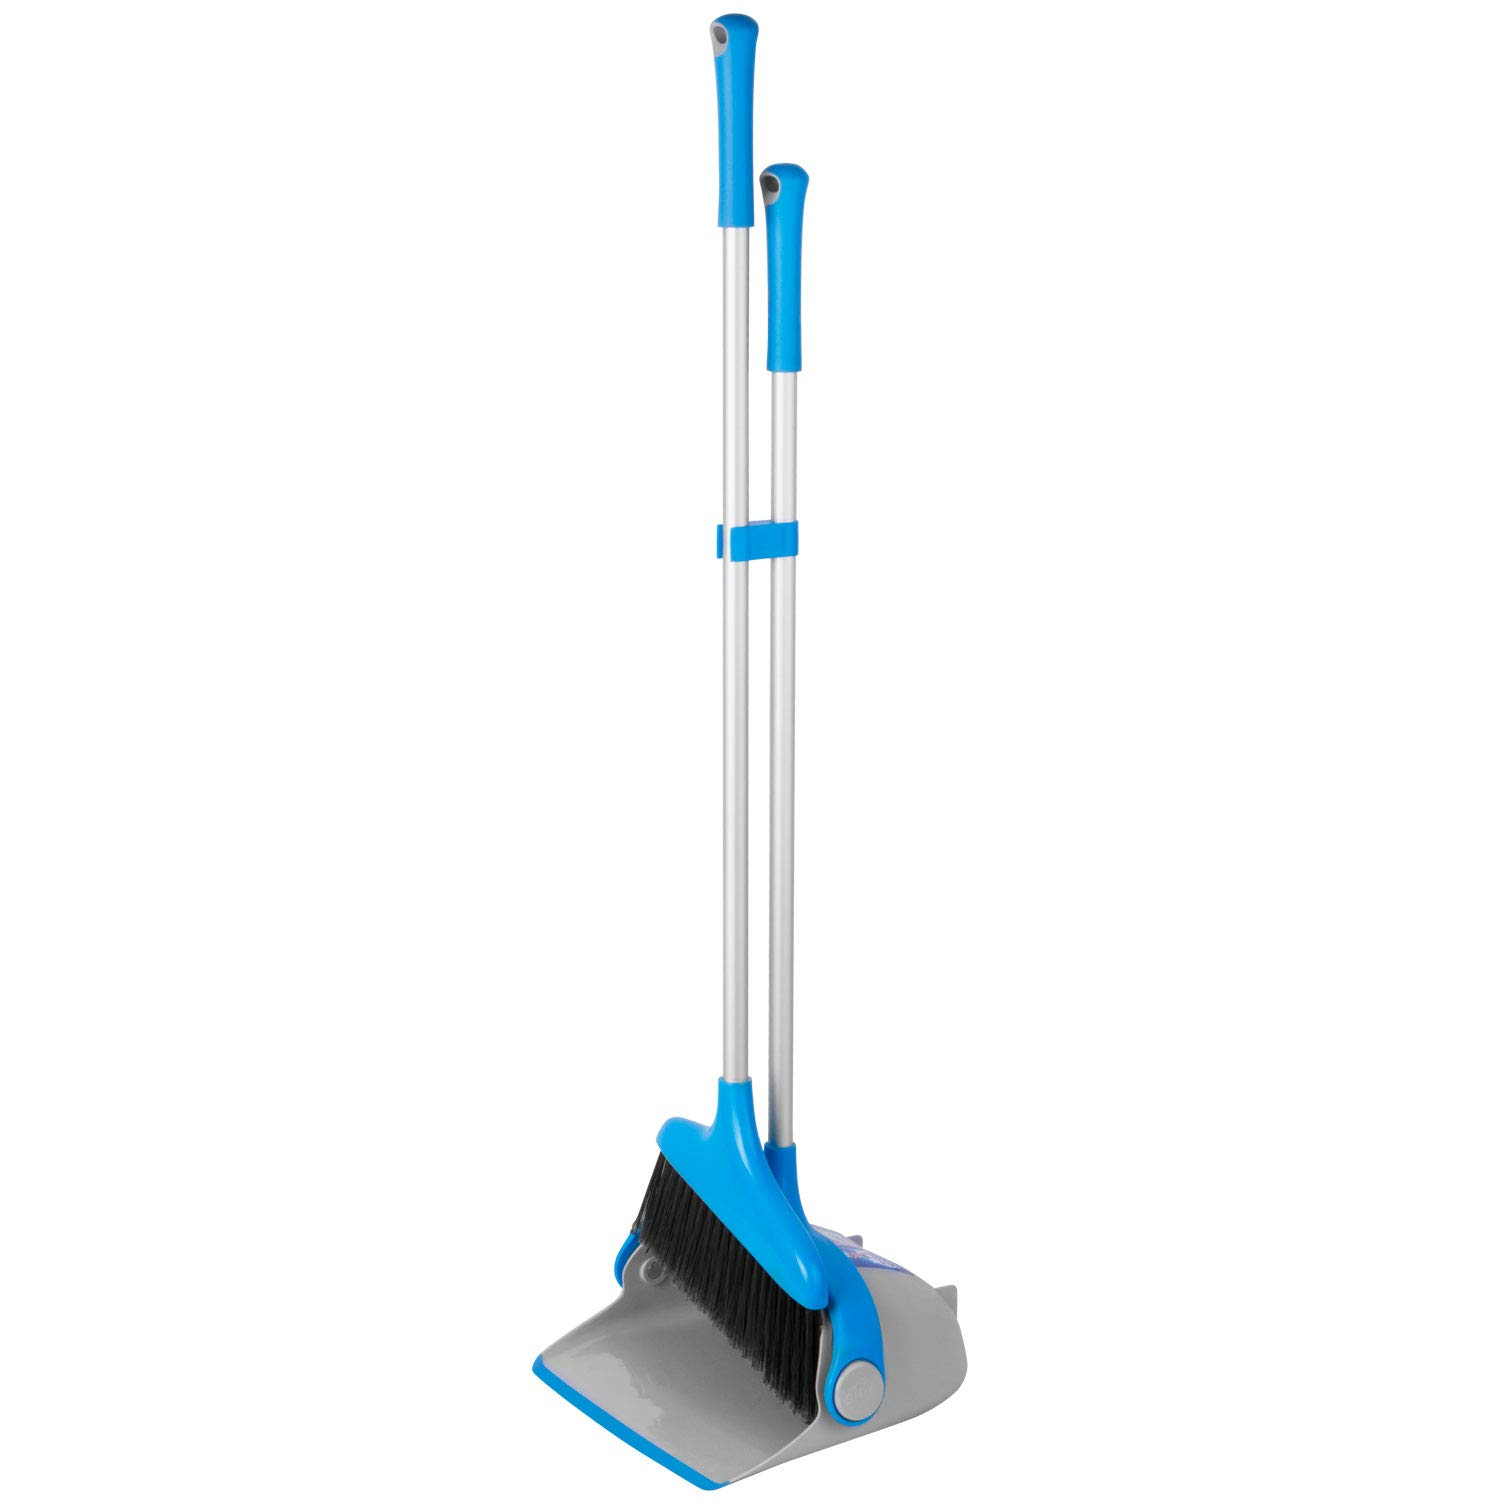 MR.SIGA Upright Broom and Dustpan Set, Blue&Gray